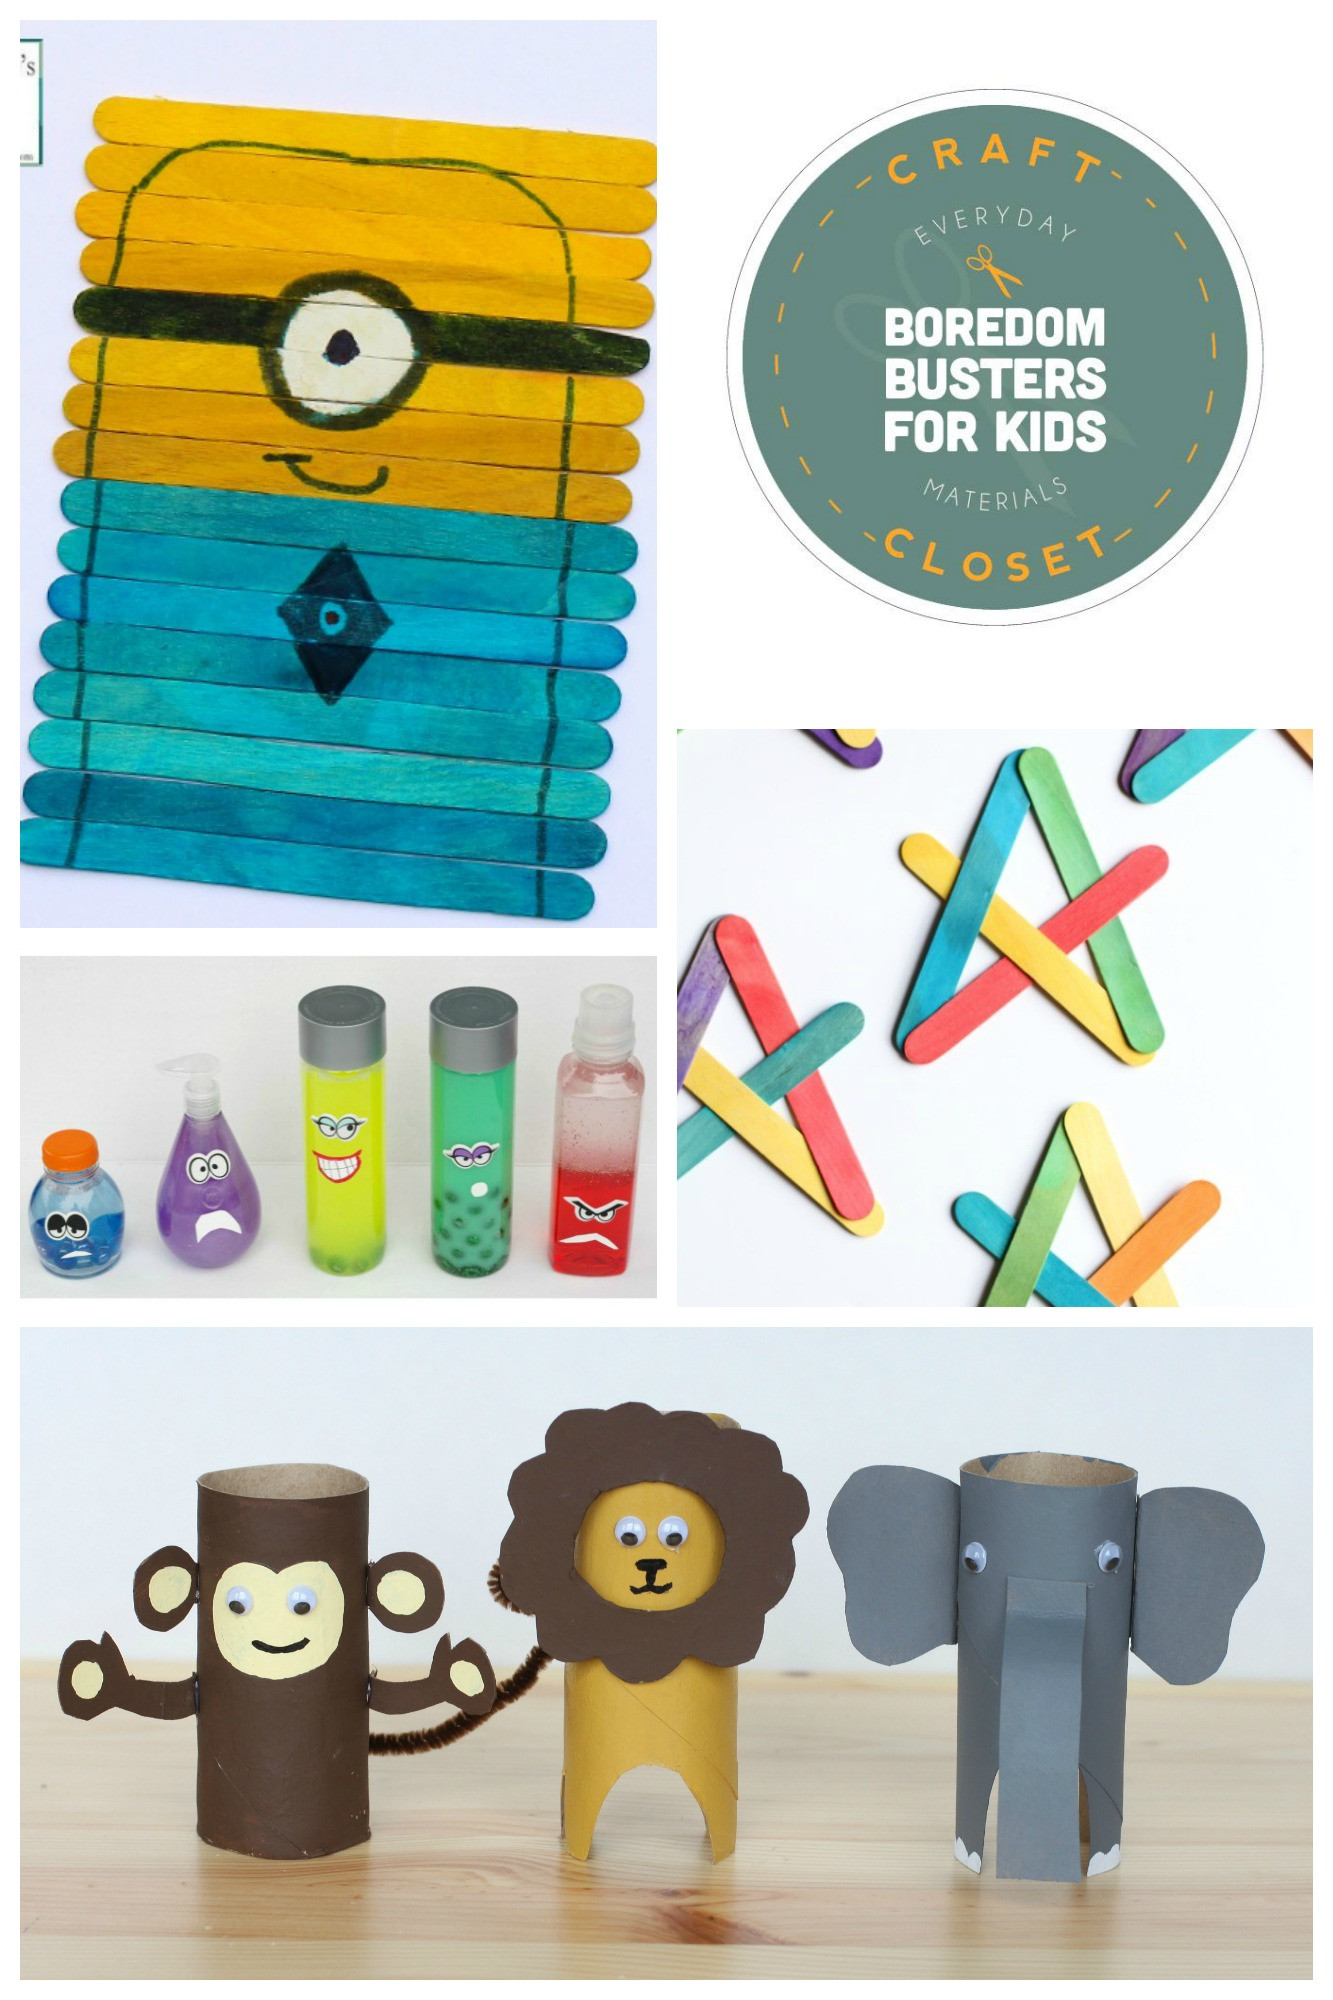 Best ideas about Crafting For Kids . Save or Pin 25 Crafts and Activities for Kids Using Everyday Now.